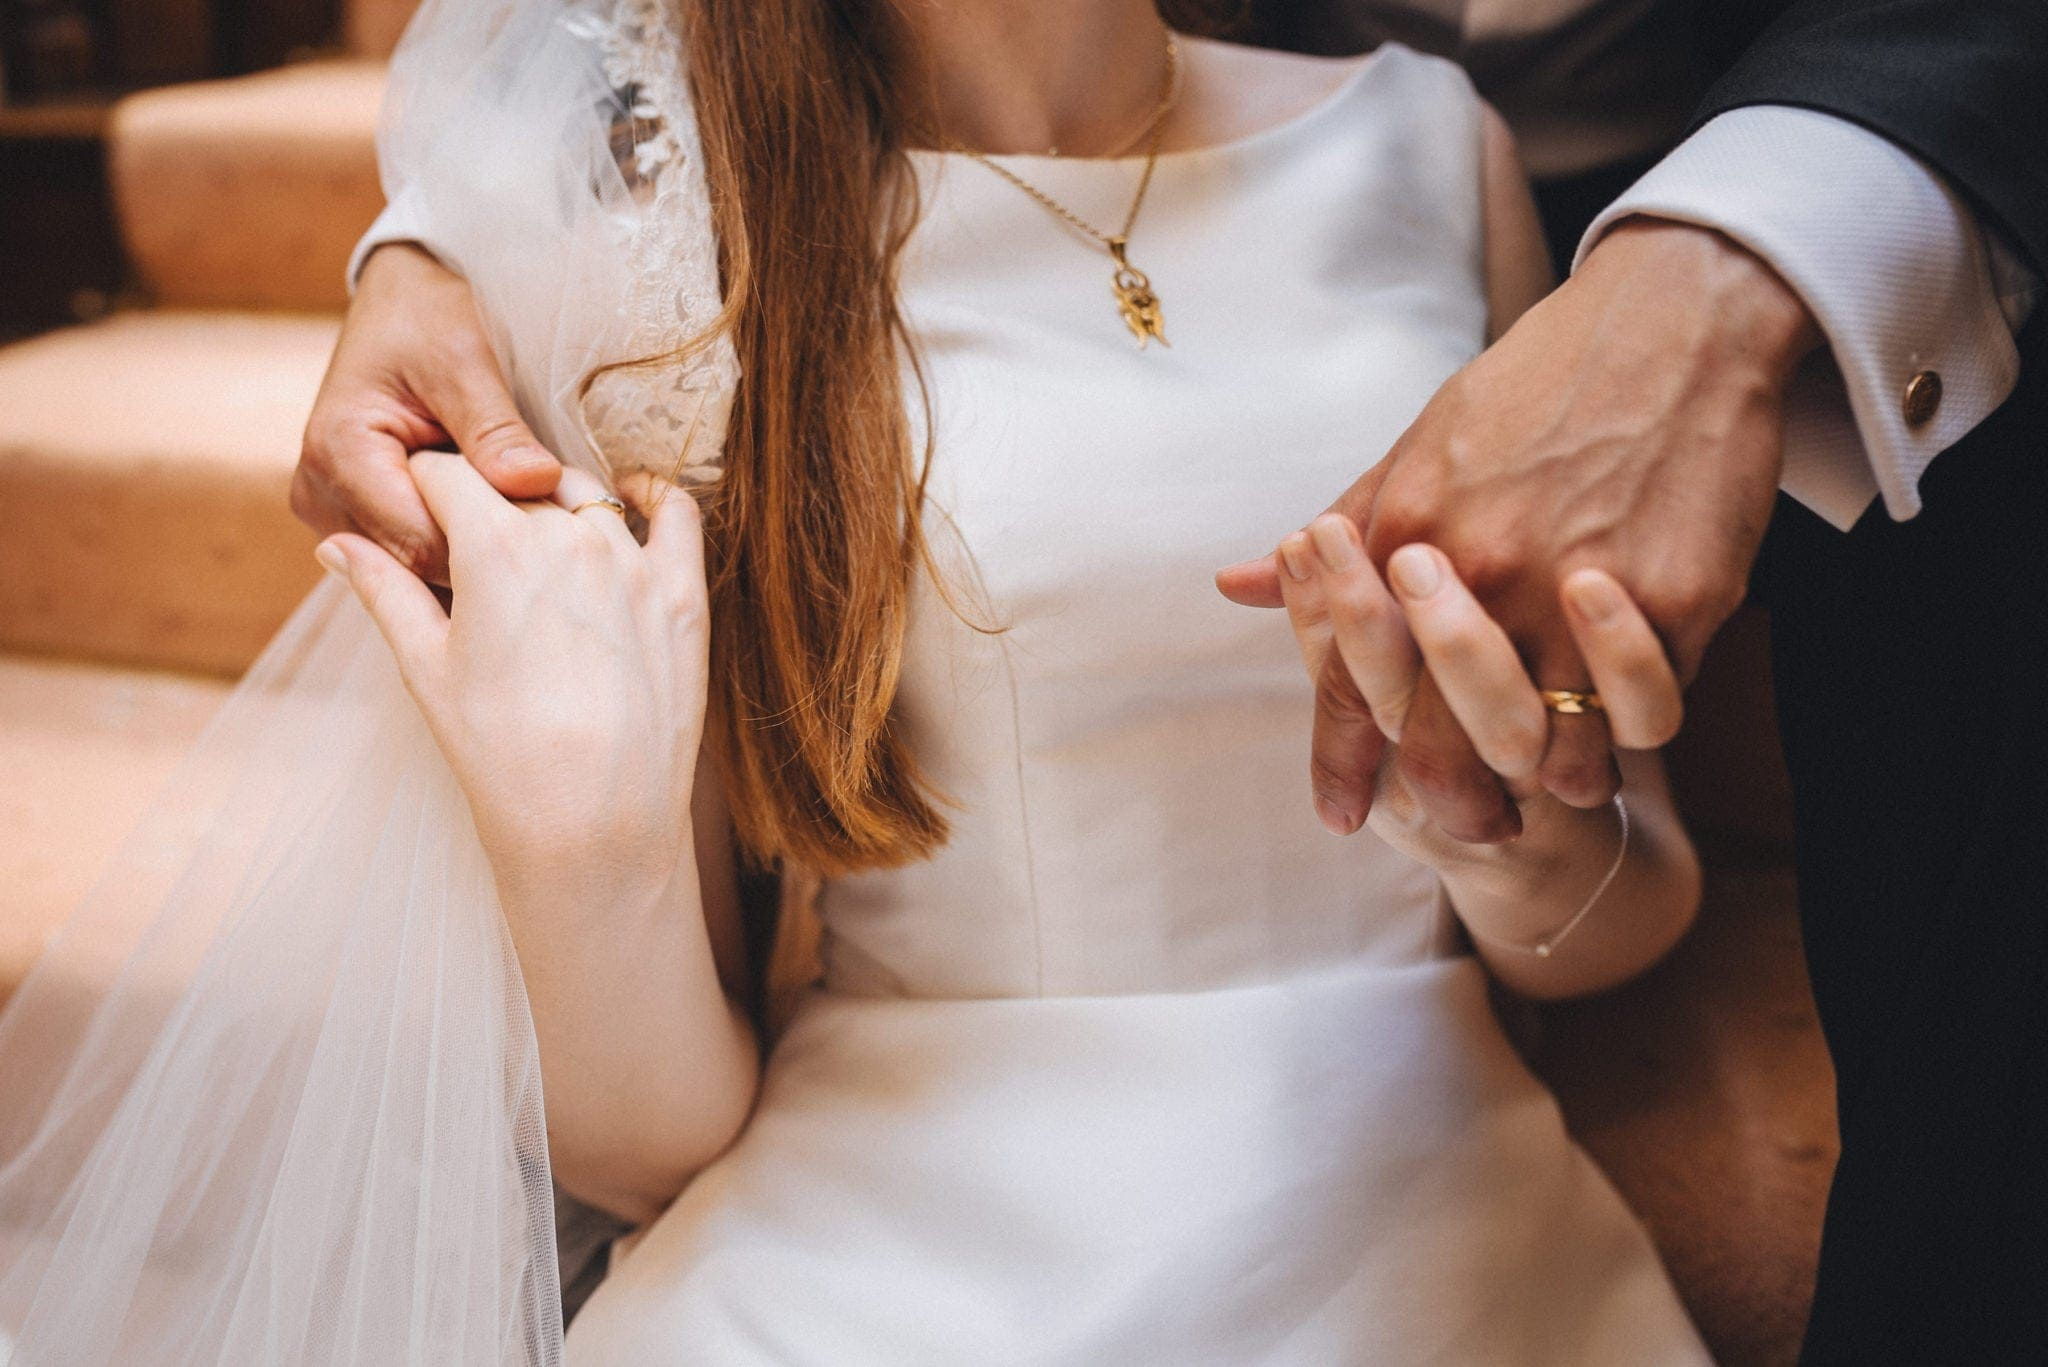 Closeup of the bride and groom holding hands